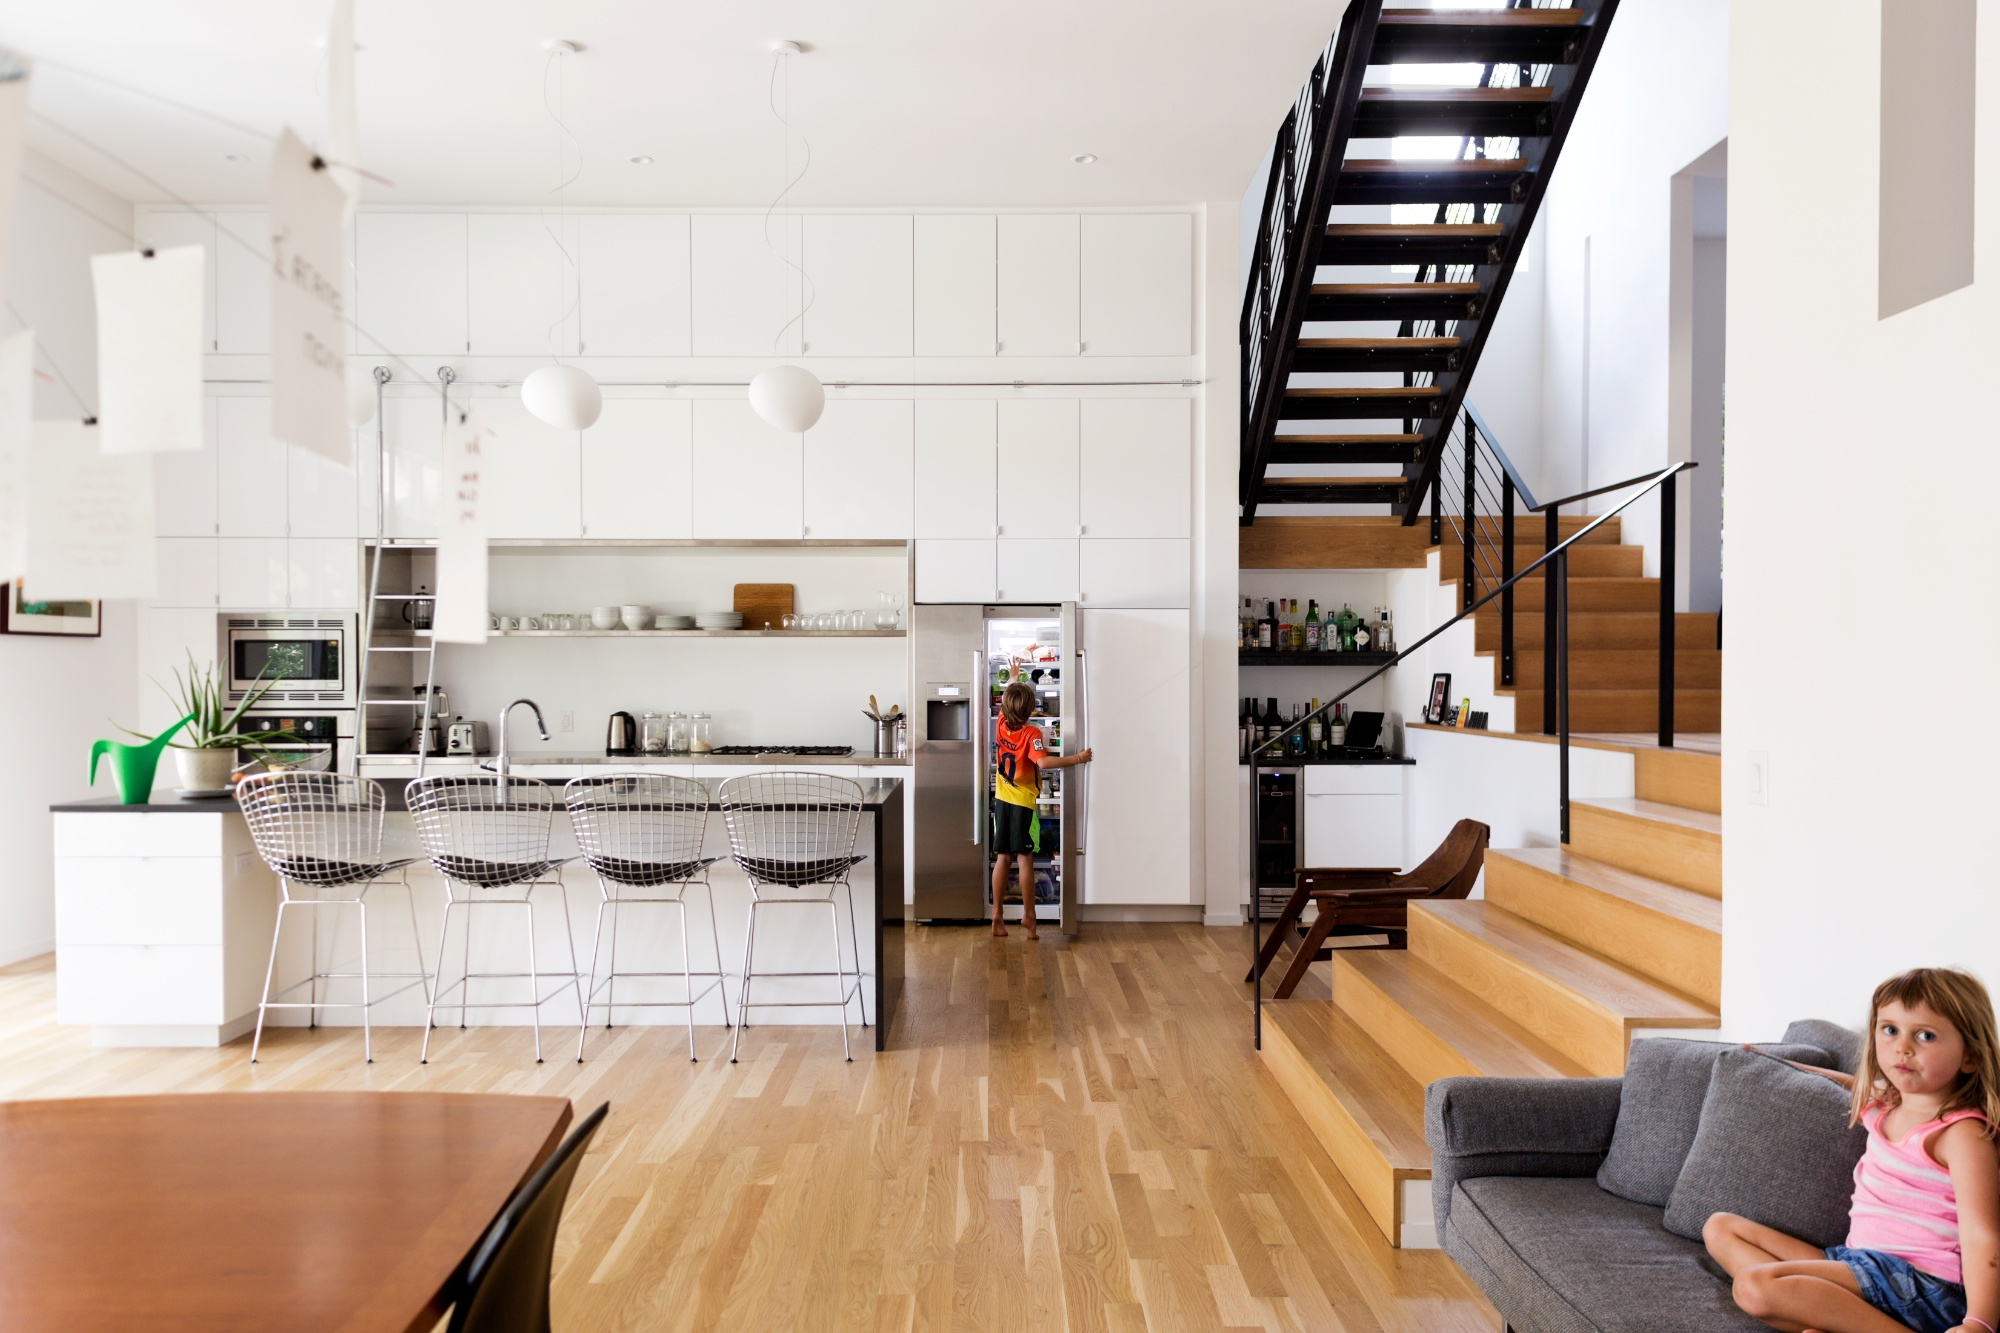 Hawthorne Residence Kitchen: featured in DWELL Magazine 'Your Rooms We Love' issue